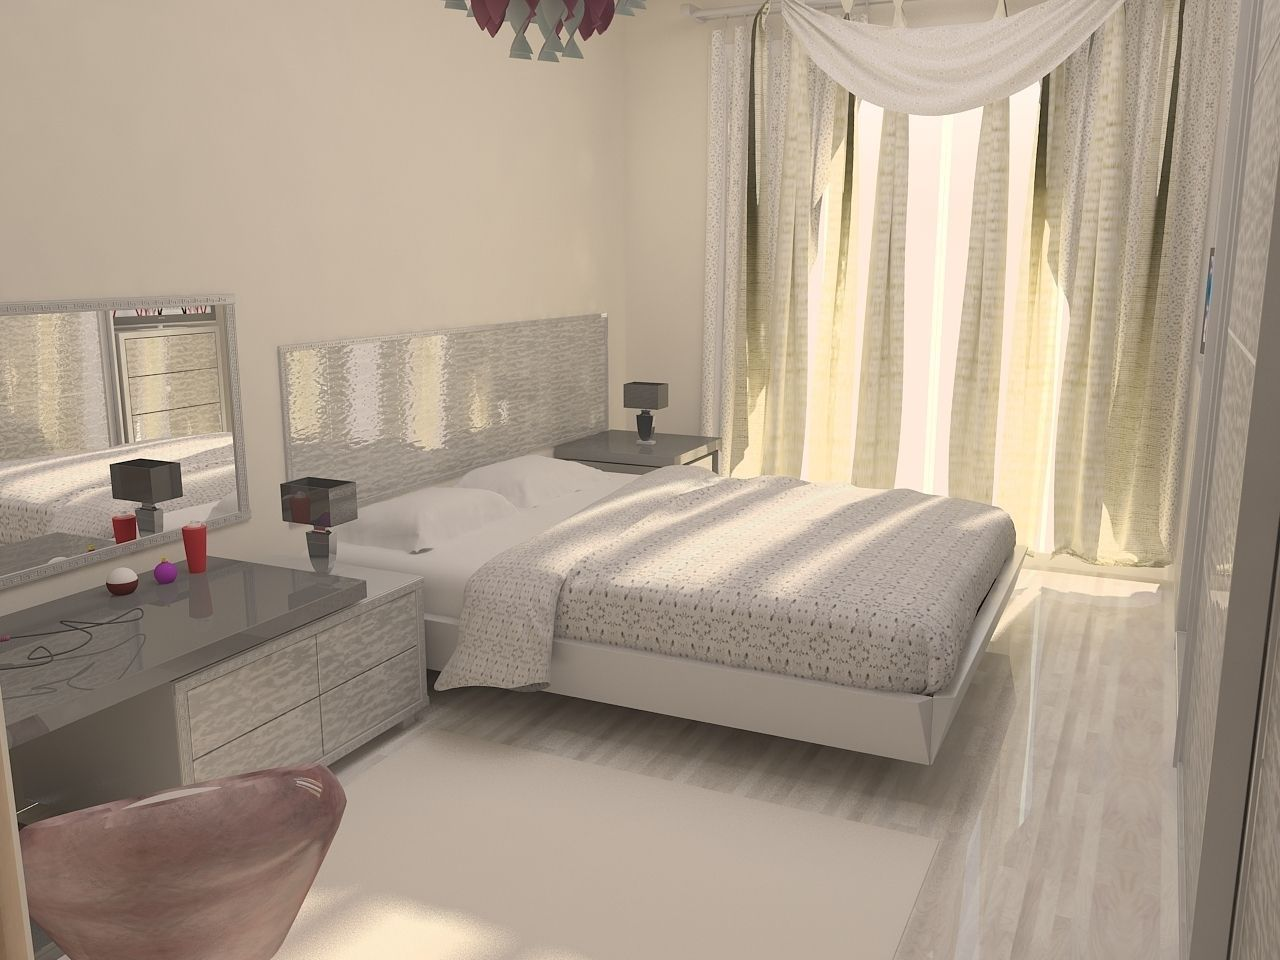 Bedroom design 3D Model MAX | CGTrader.com on Model Bedroom Ideas  id=70752